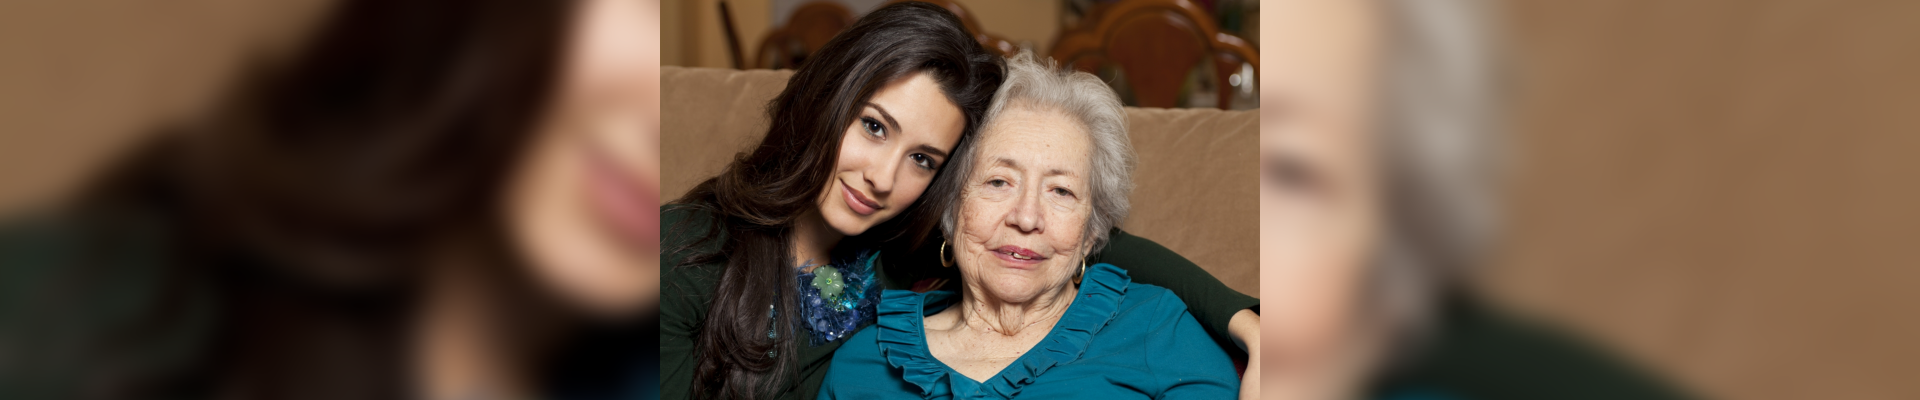 woman with her caregiver smiling